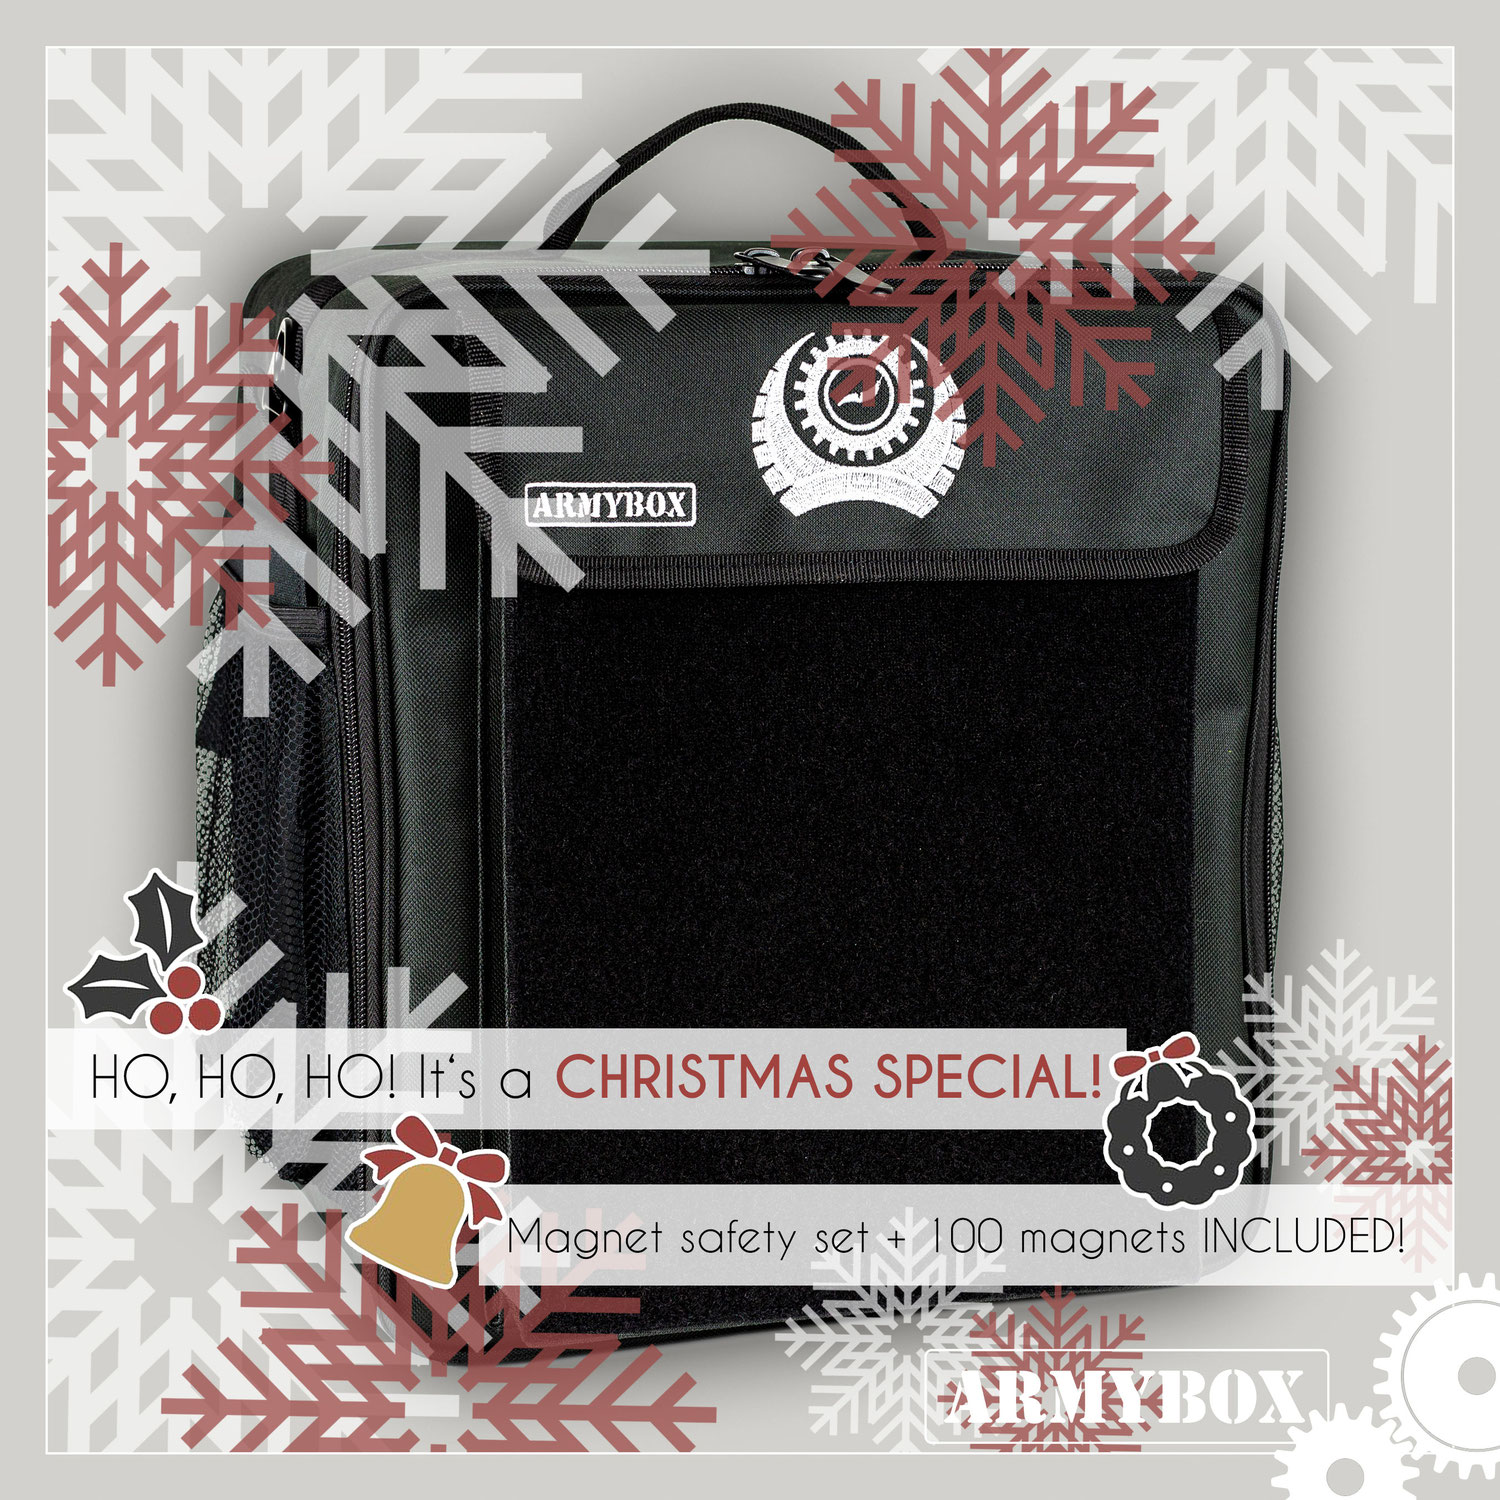 Christmas Special ends on 26th december!